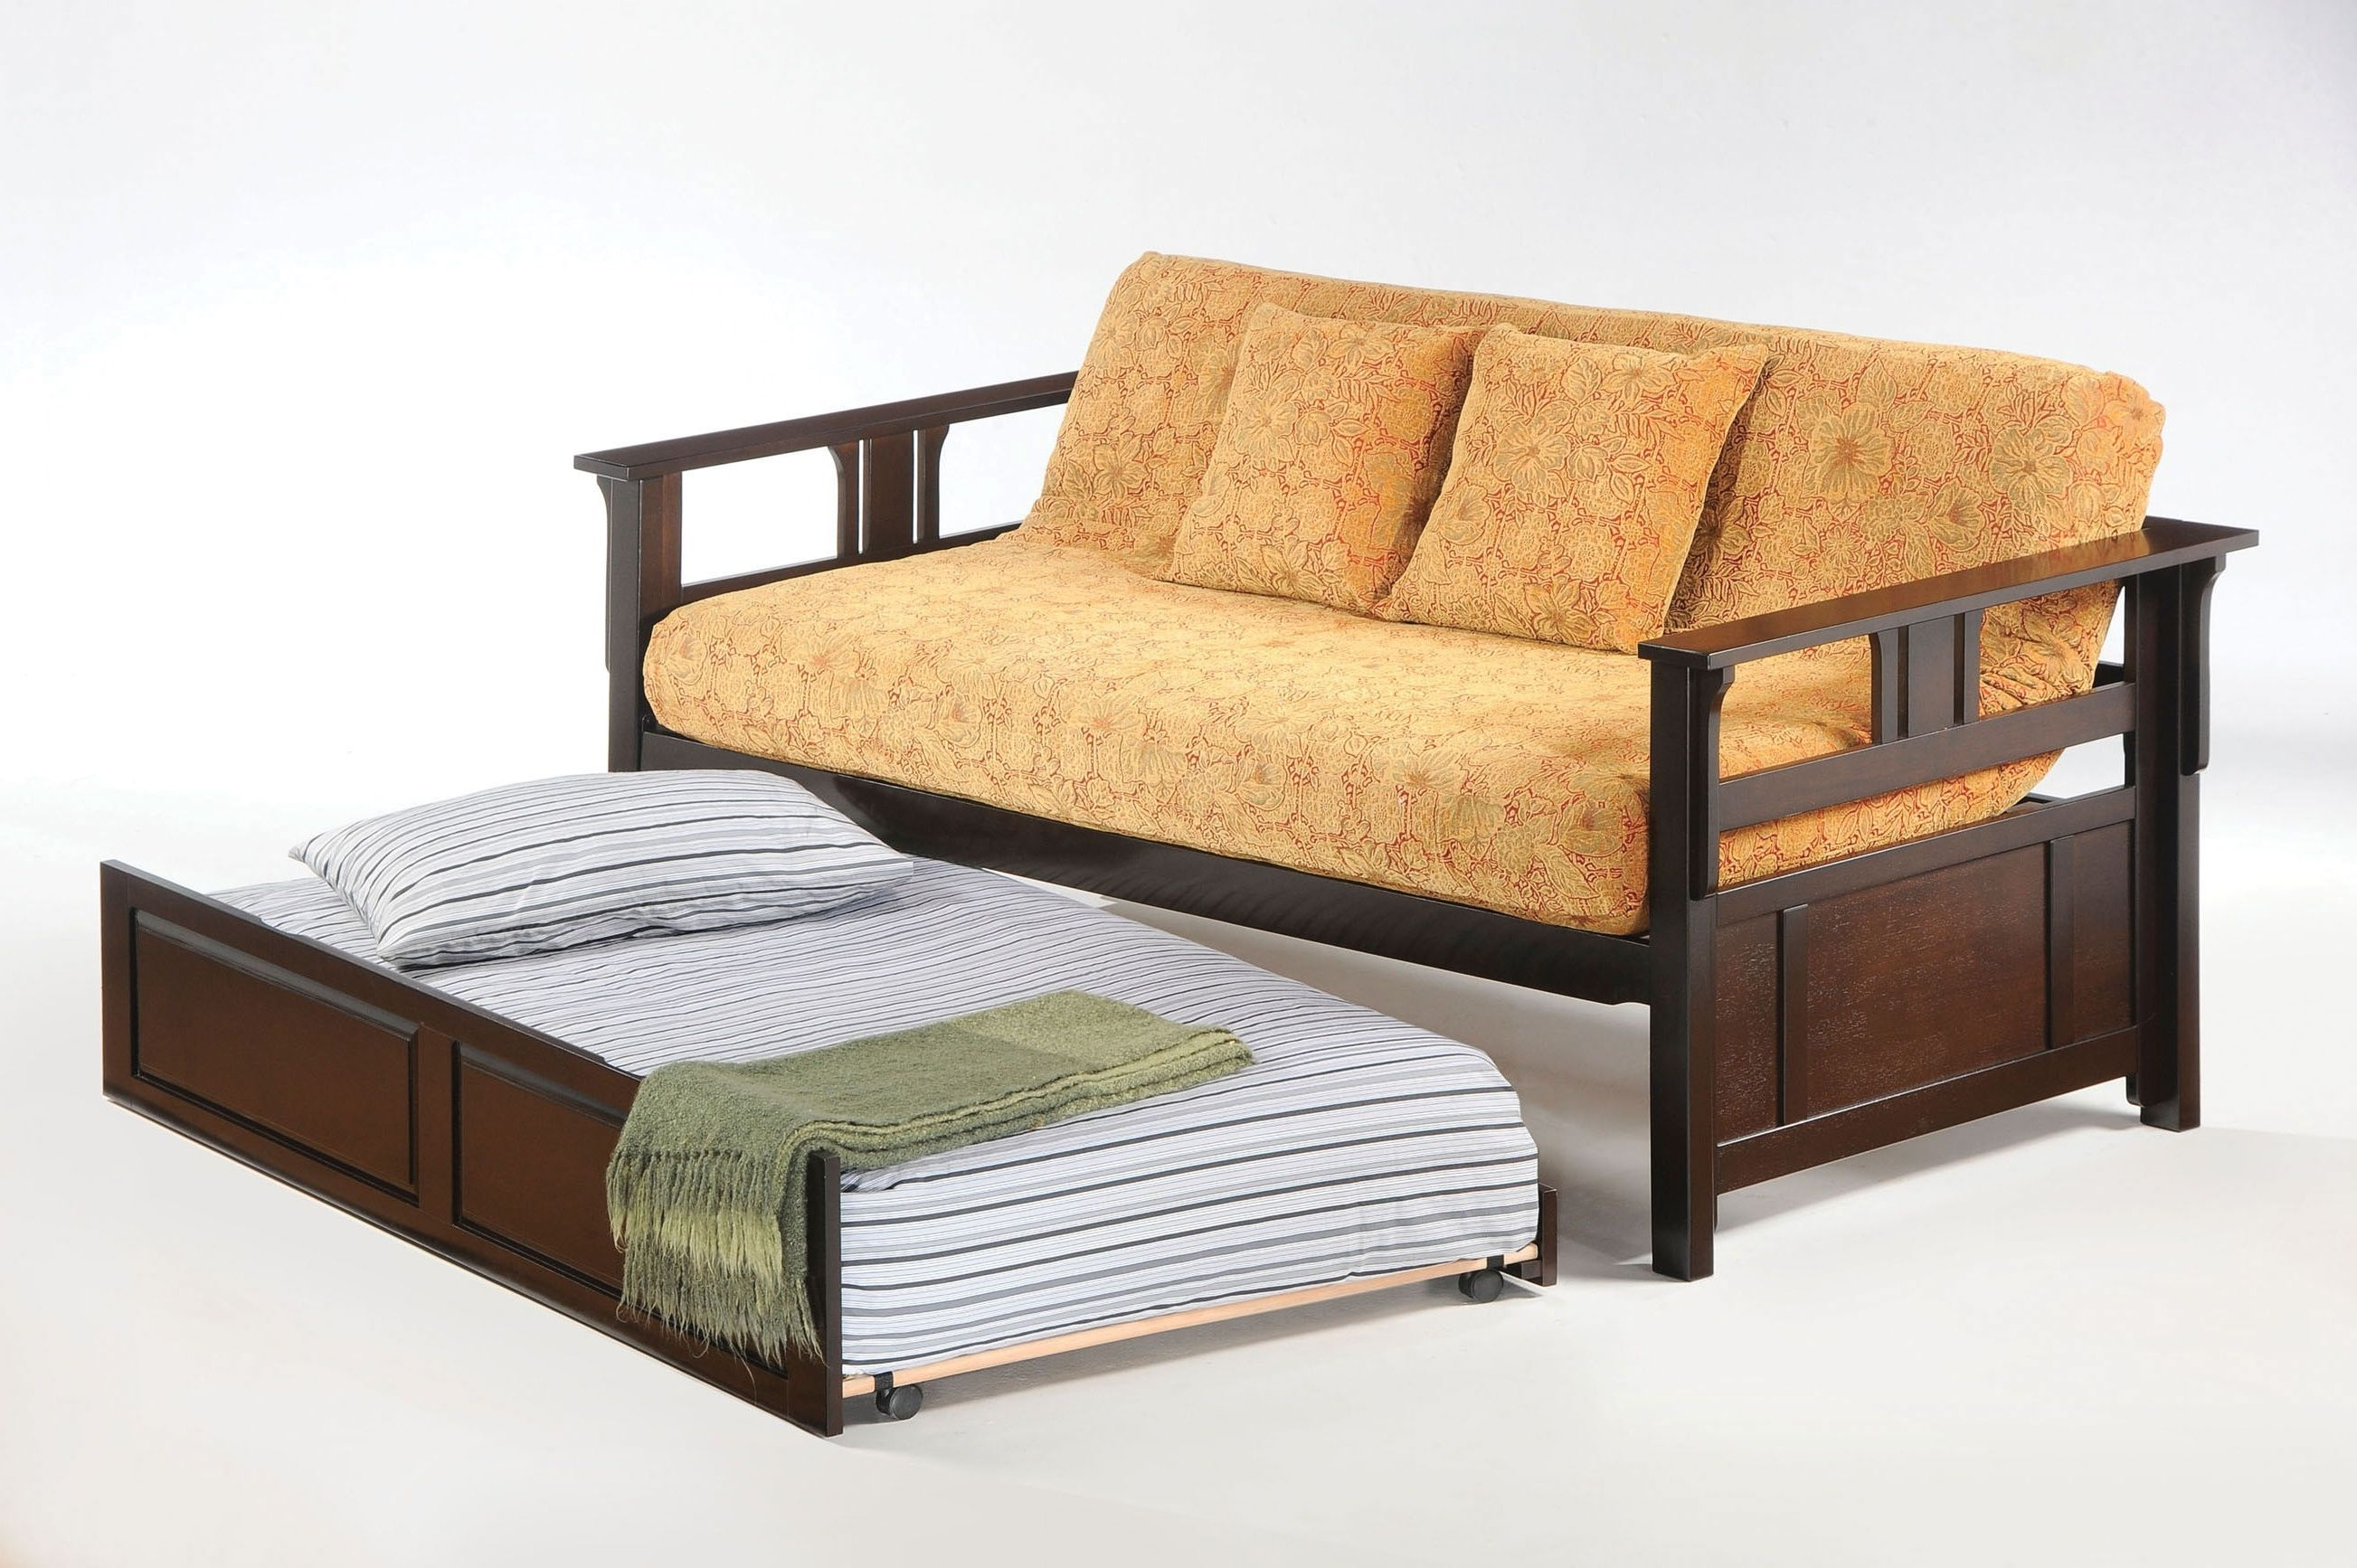 Couch With Trundle Bed (With images)   Sofa bed design ...